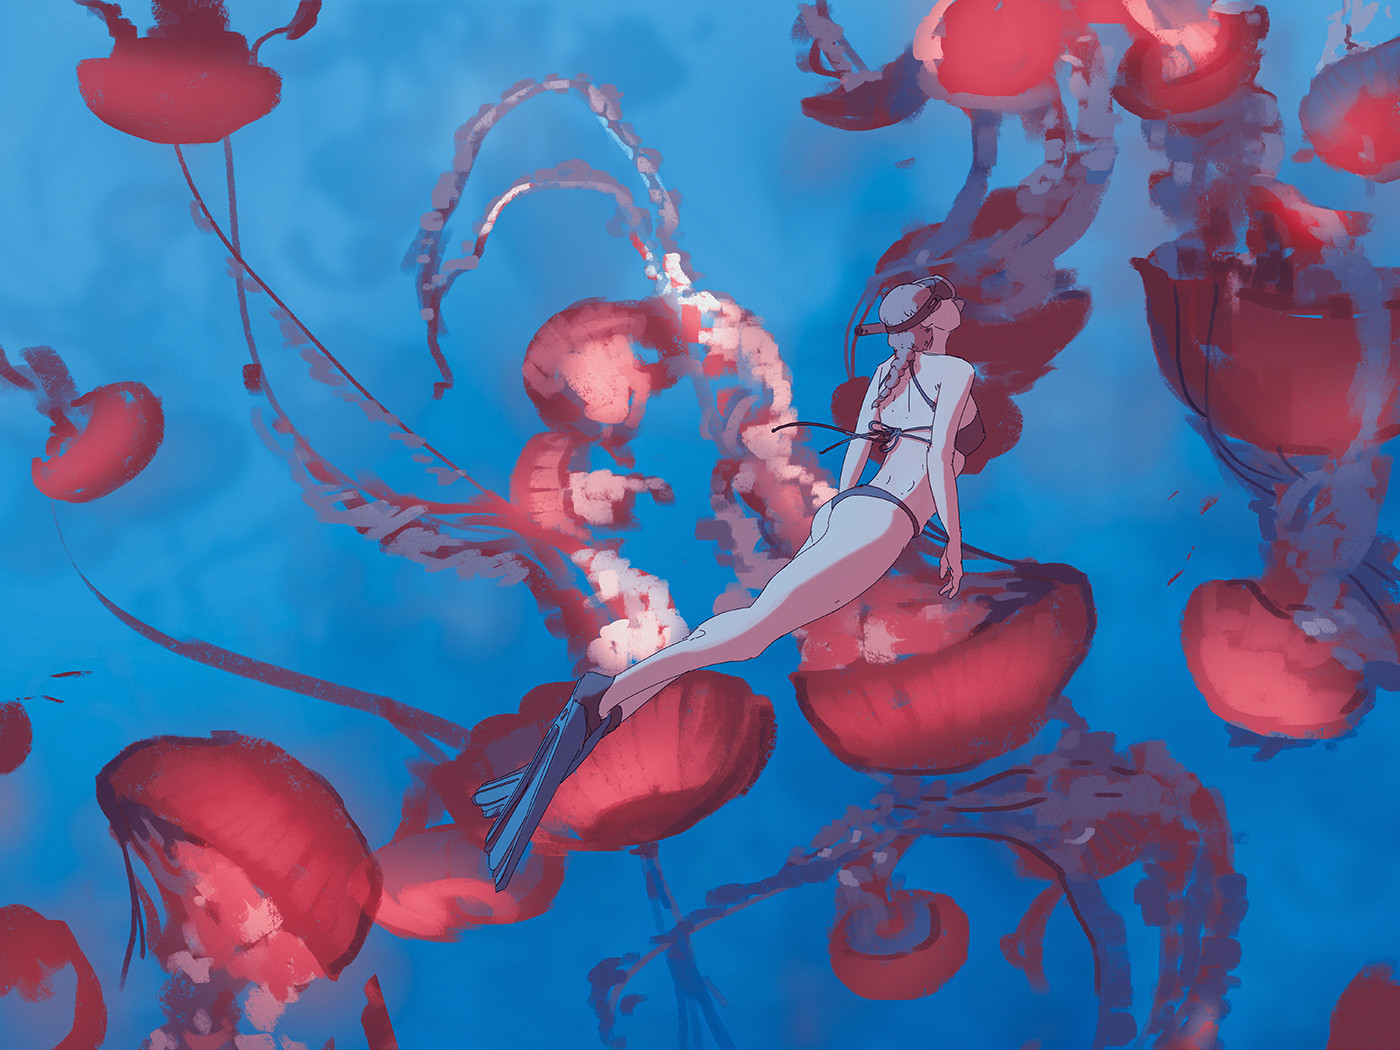 110 365 Swimming with jellyfishes, Atey Ghailan_01